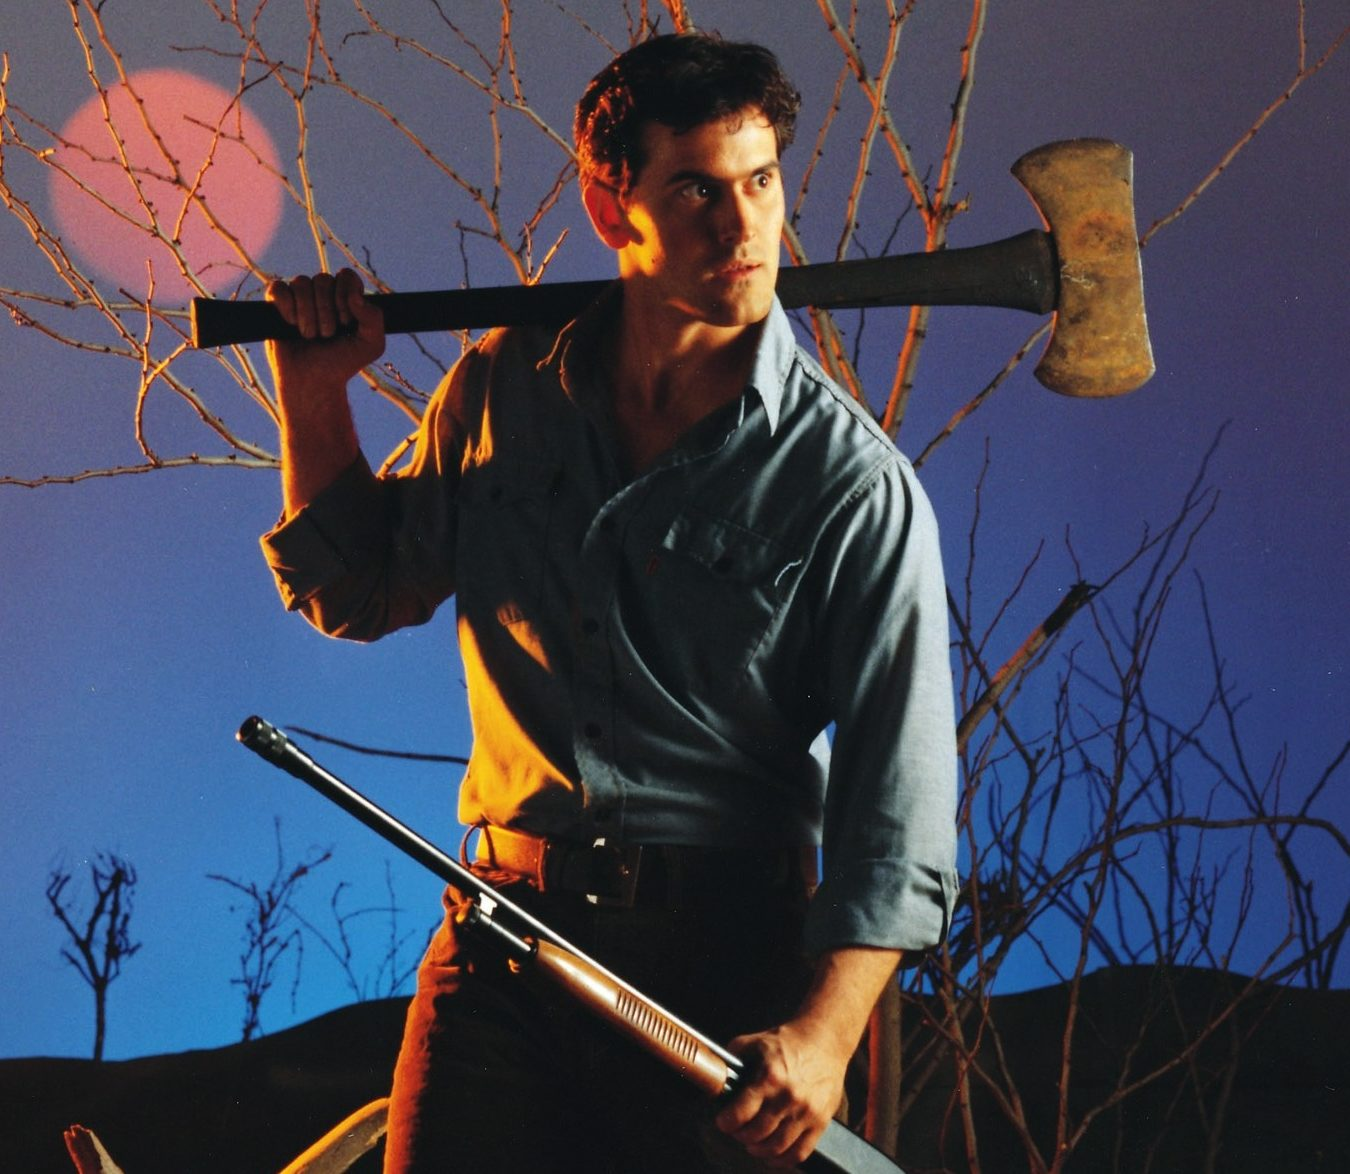 evildead brucecampbell e1610035037535 20 Things You Never Knew About Xena: Warrior Princess